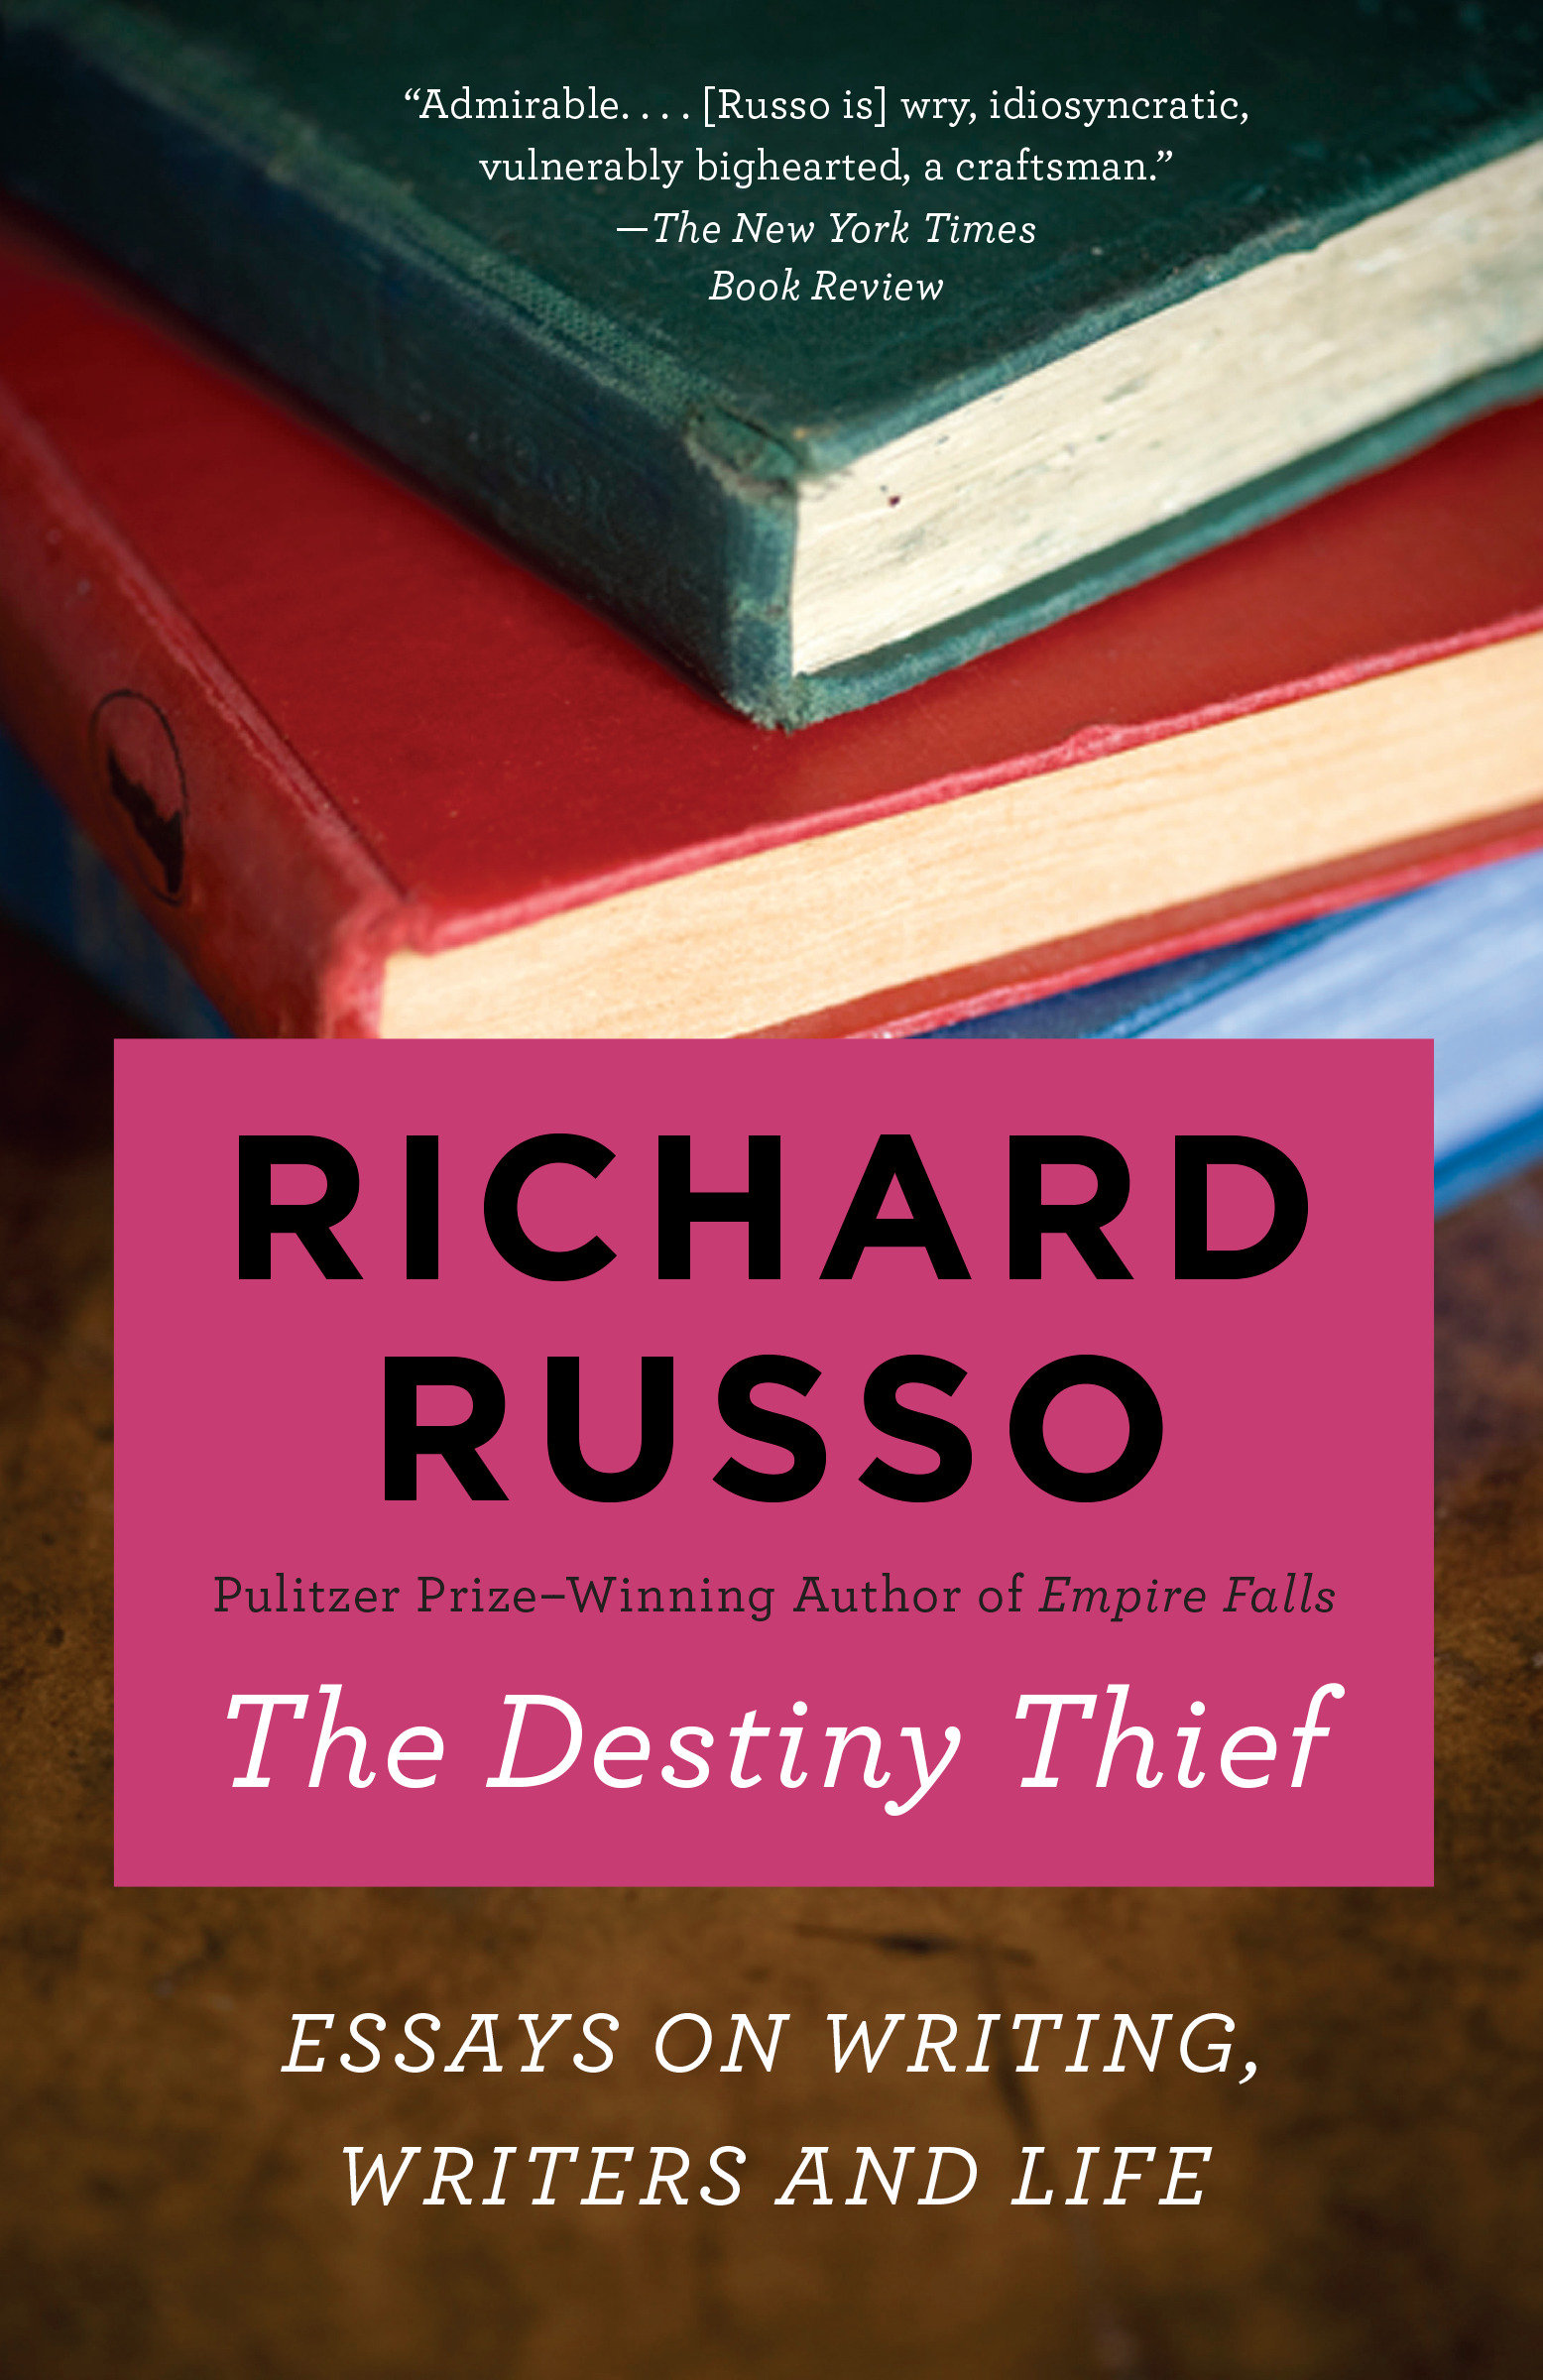 The destiny thief essays on writing, writers, and life cover image